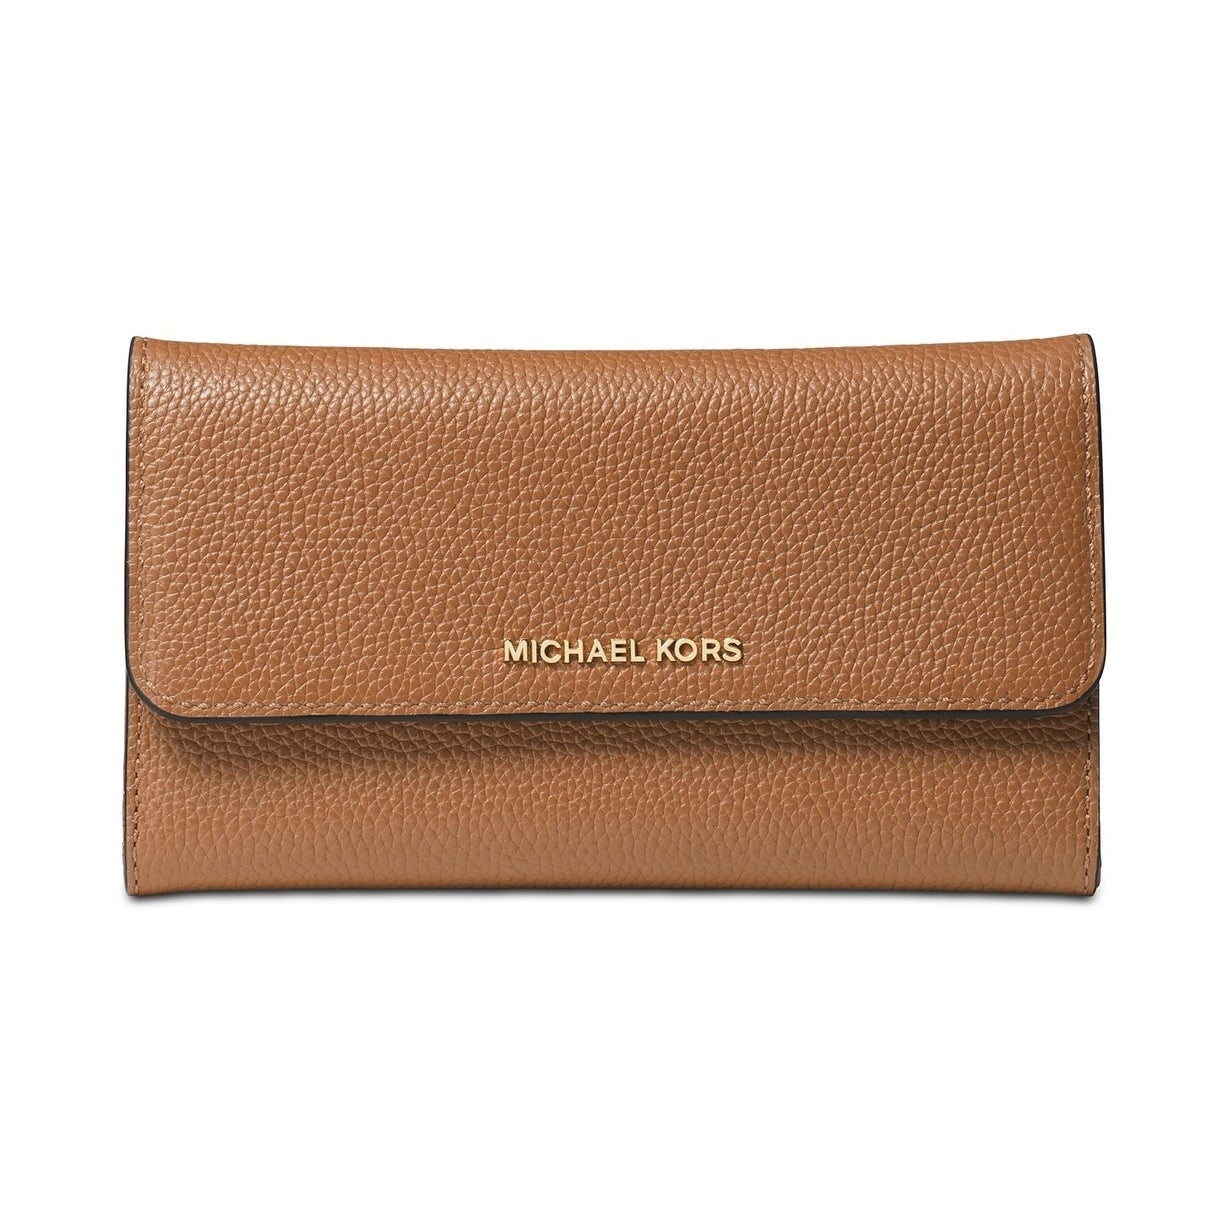 0dcf6f355d0a Shop MICHAEL Michael Kors Pebble Leather Trifold Wallet - On Sale - Free  Shipping Today - Overstock - 25607457